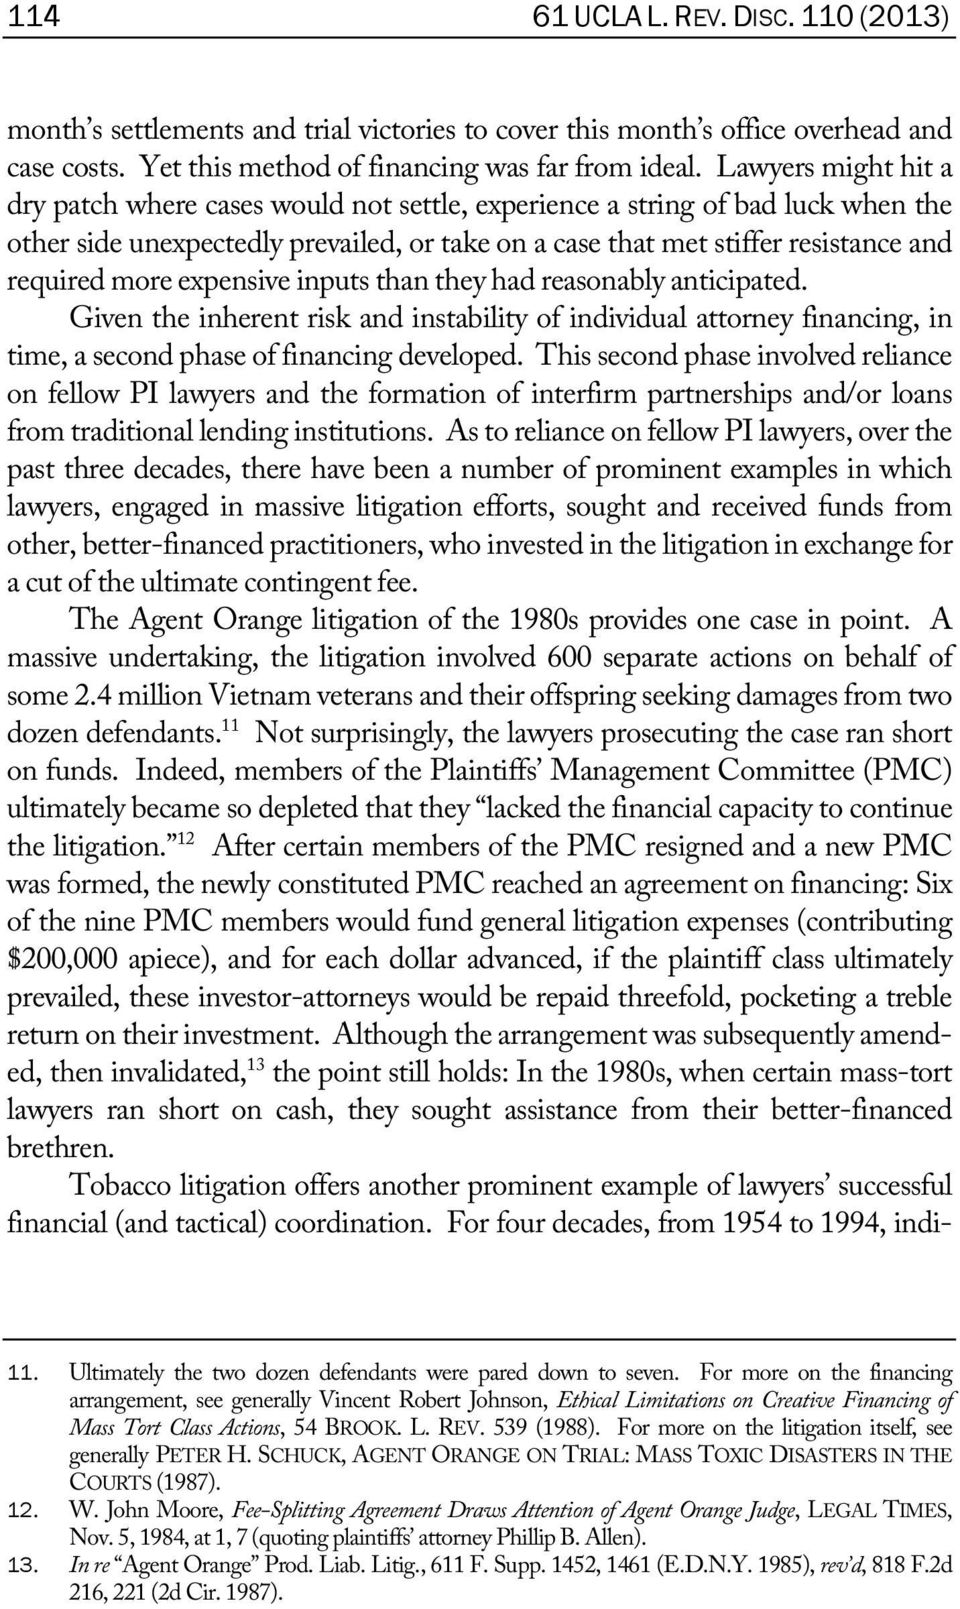 expensive inputs than they had reasonably anticipated. Given the inherent risk and instability of individual attorney financing, in time, a second phase of financing developed.